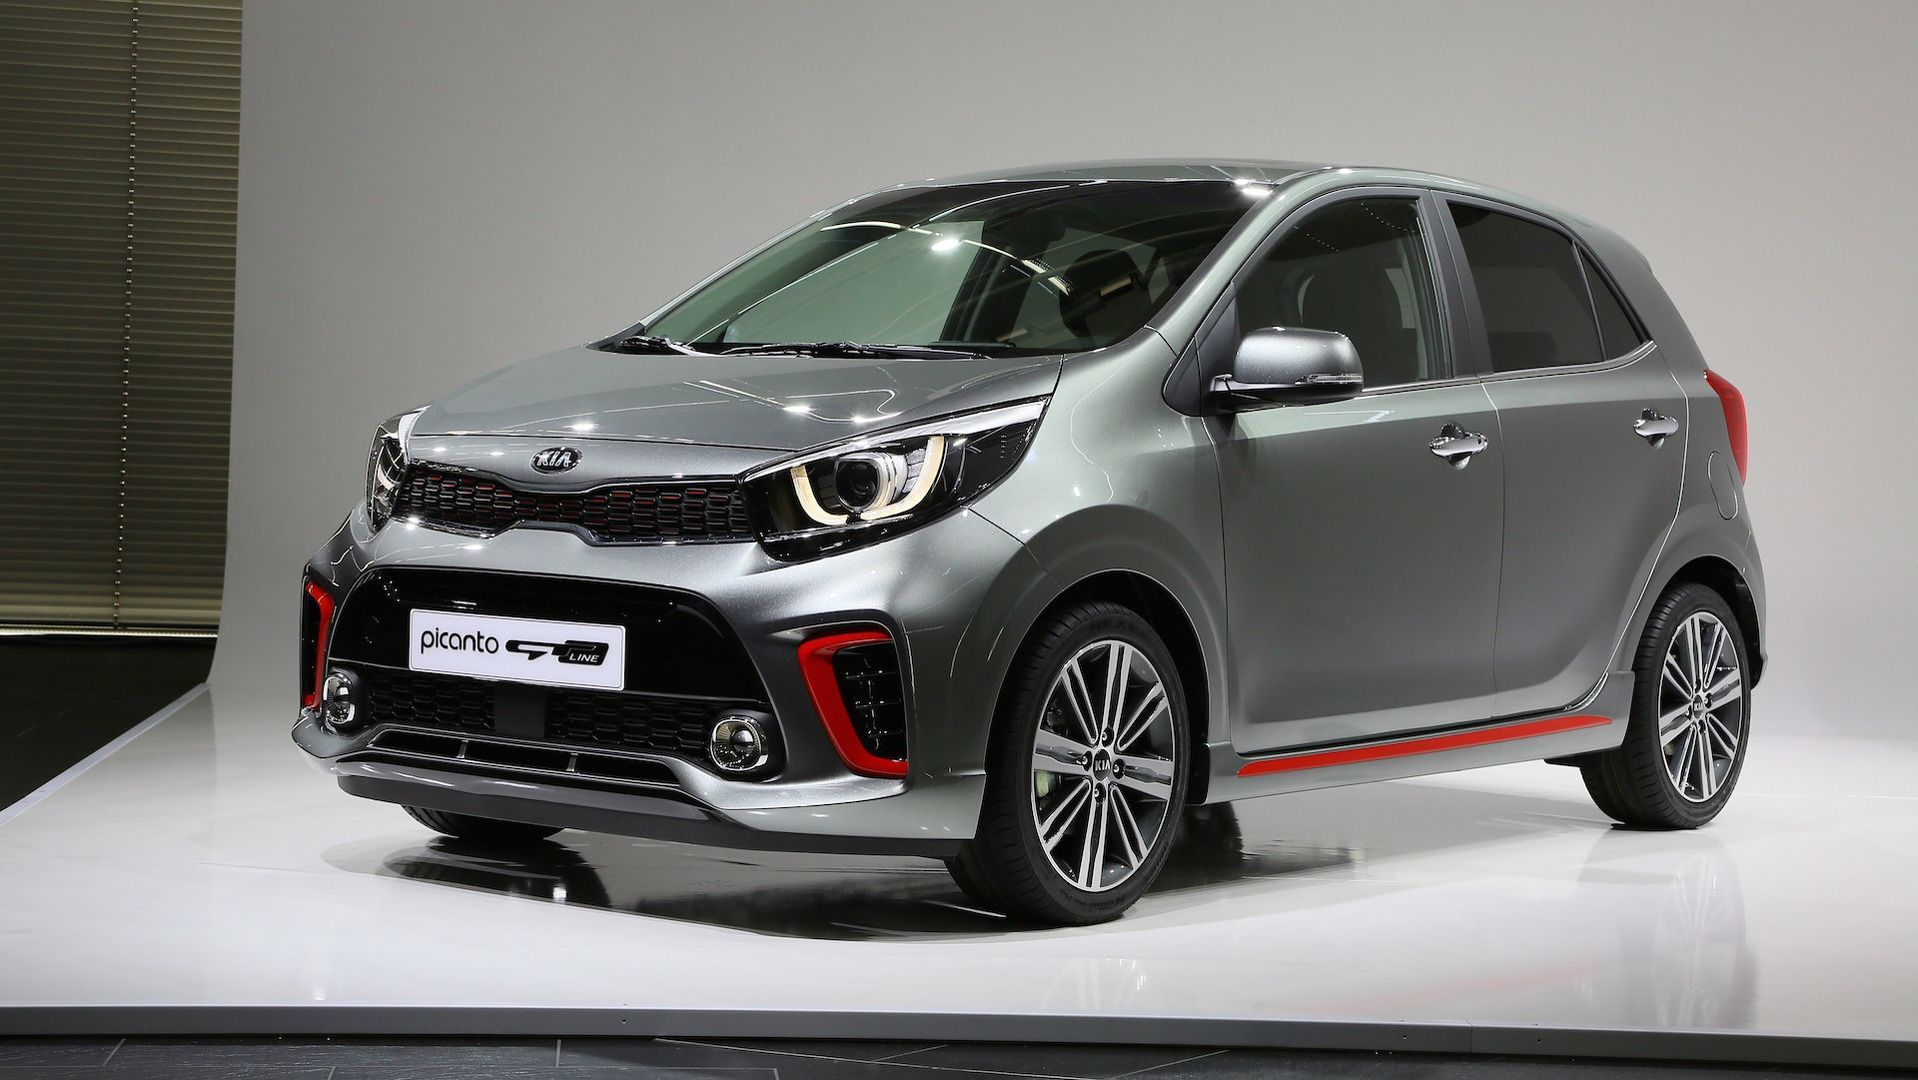 Kia Picanto Gt Line 2020 New Review Kia Picanto Picanto City Car